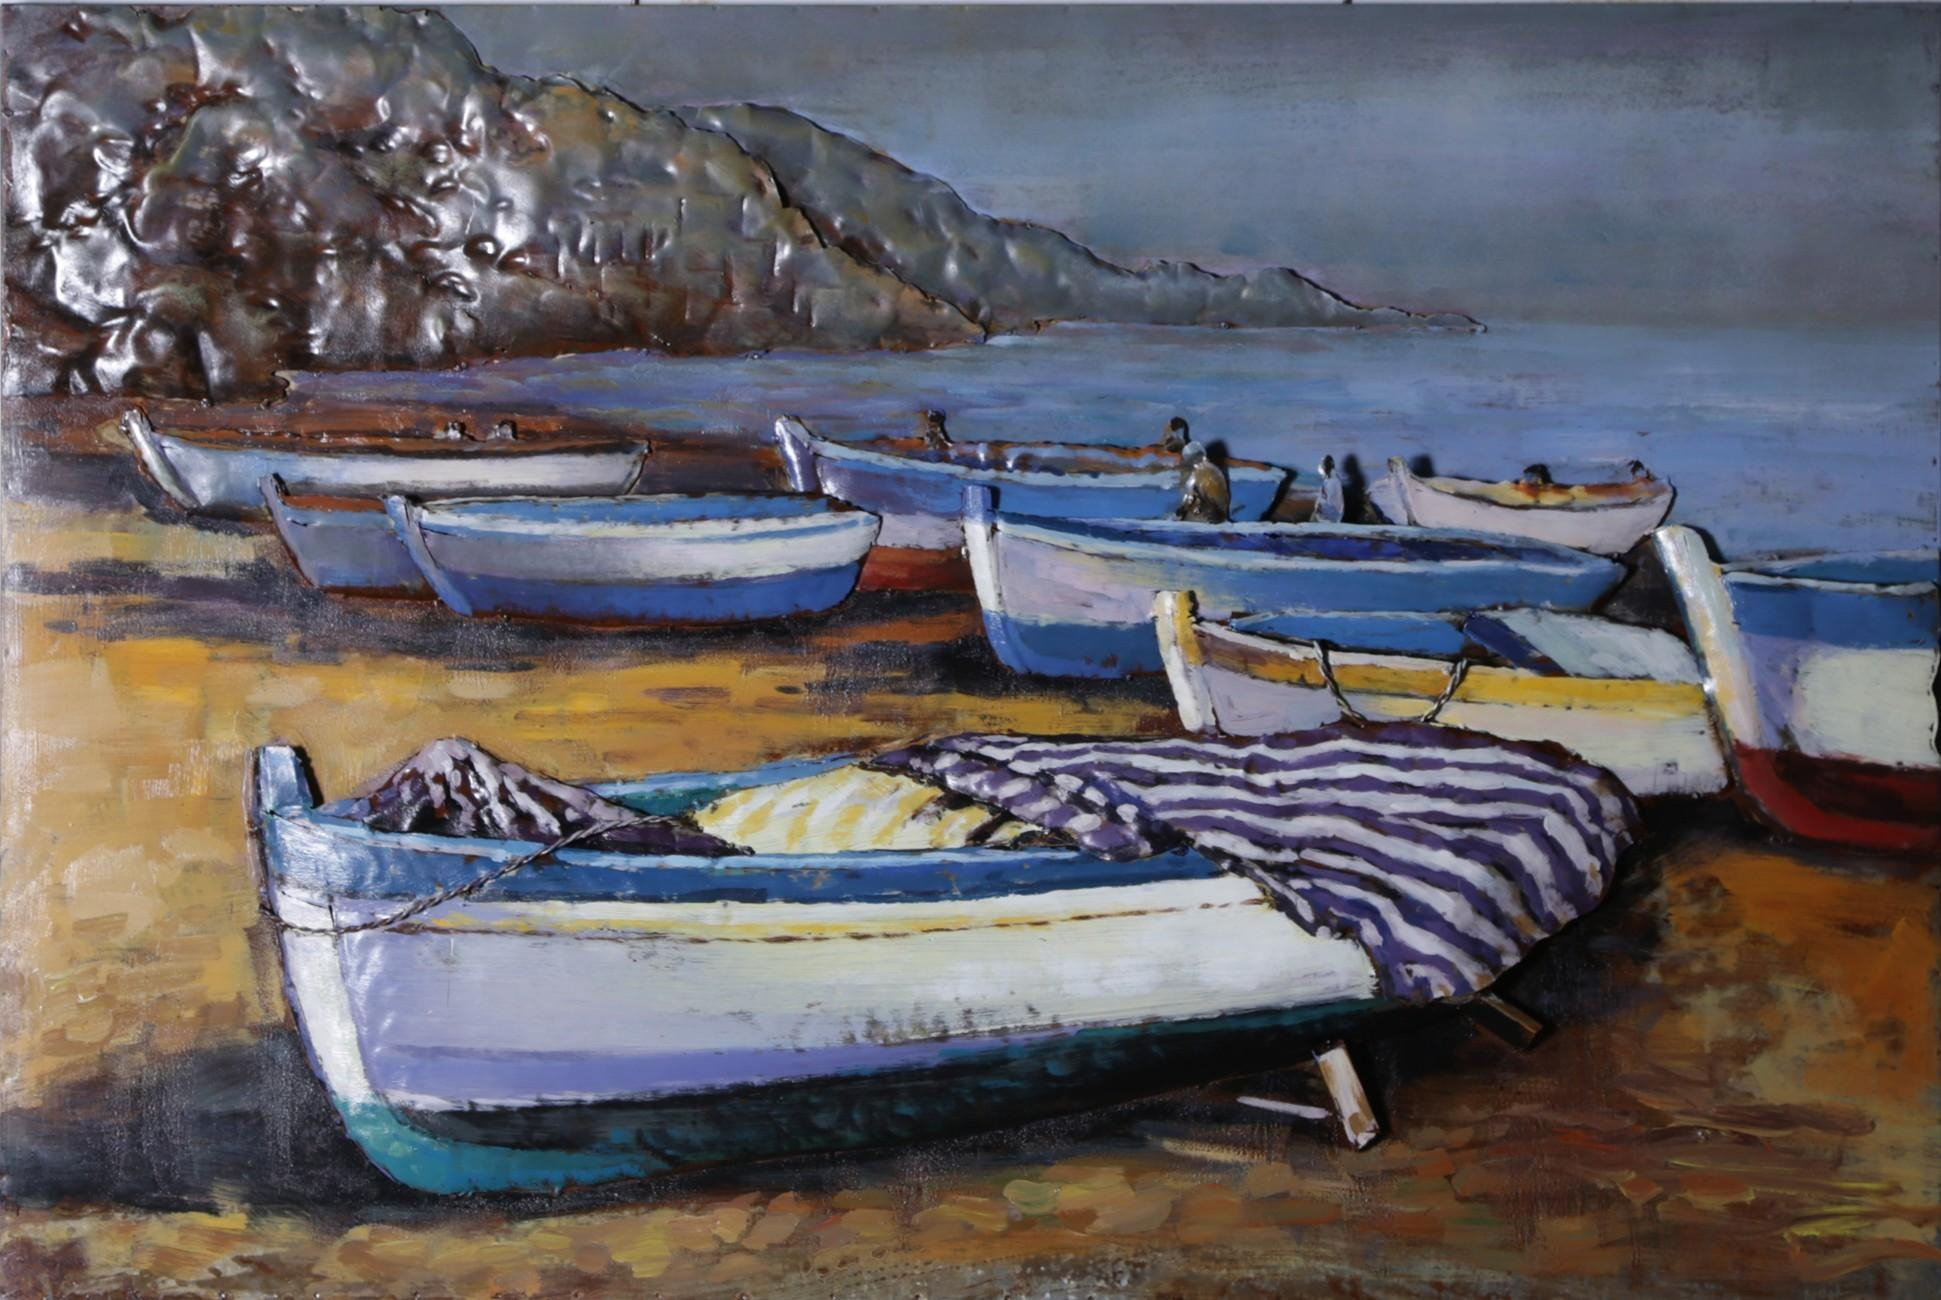 Seaside Boats 3D Metal Wall Art – Blackbrook Interiors Within Seaside Metal Wall Art (Image 16 of 20)